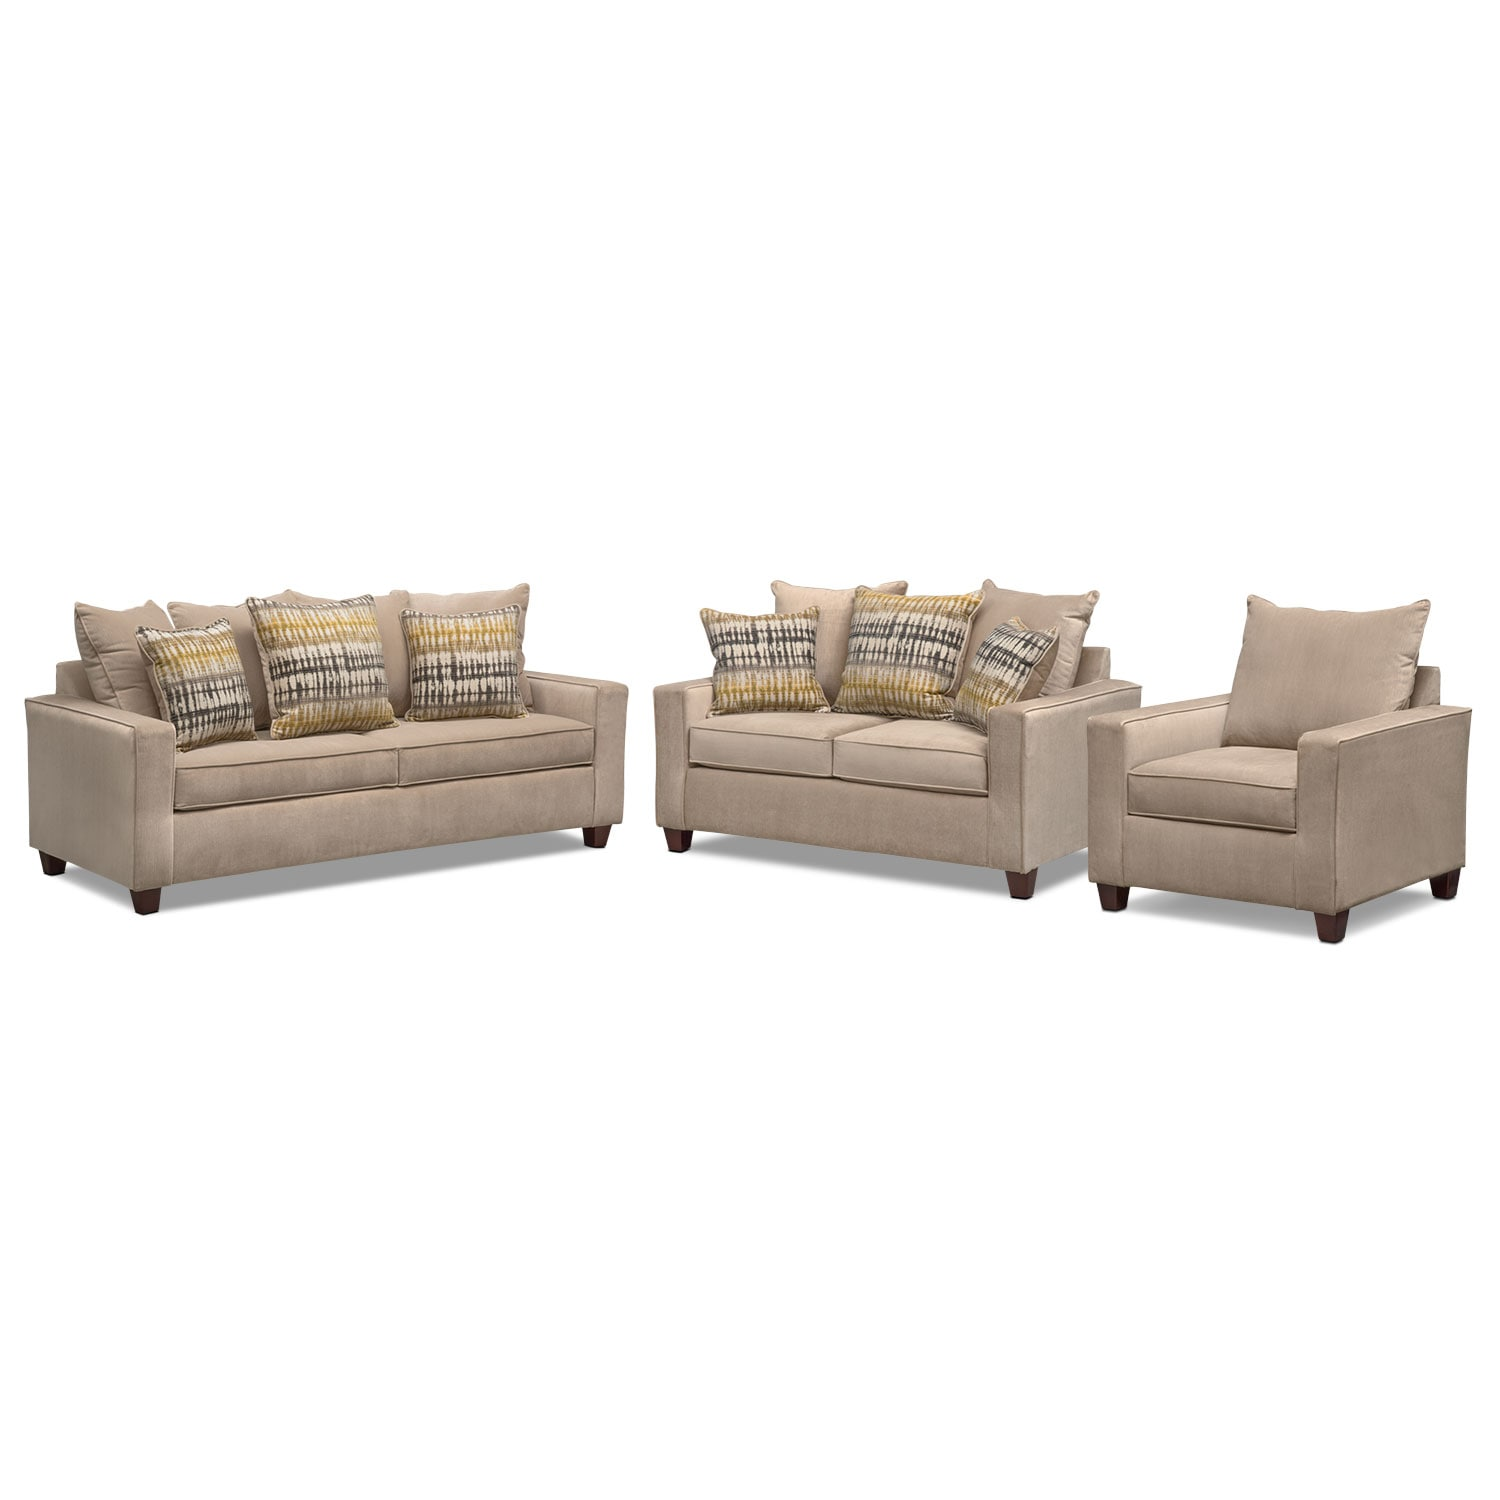 Bryden Queen Innerspring Sleeper Sofa, Loveseat and Chair Set - Beige